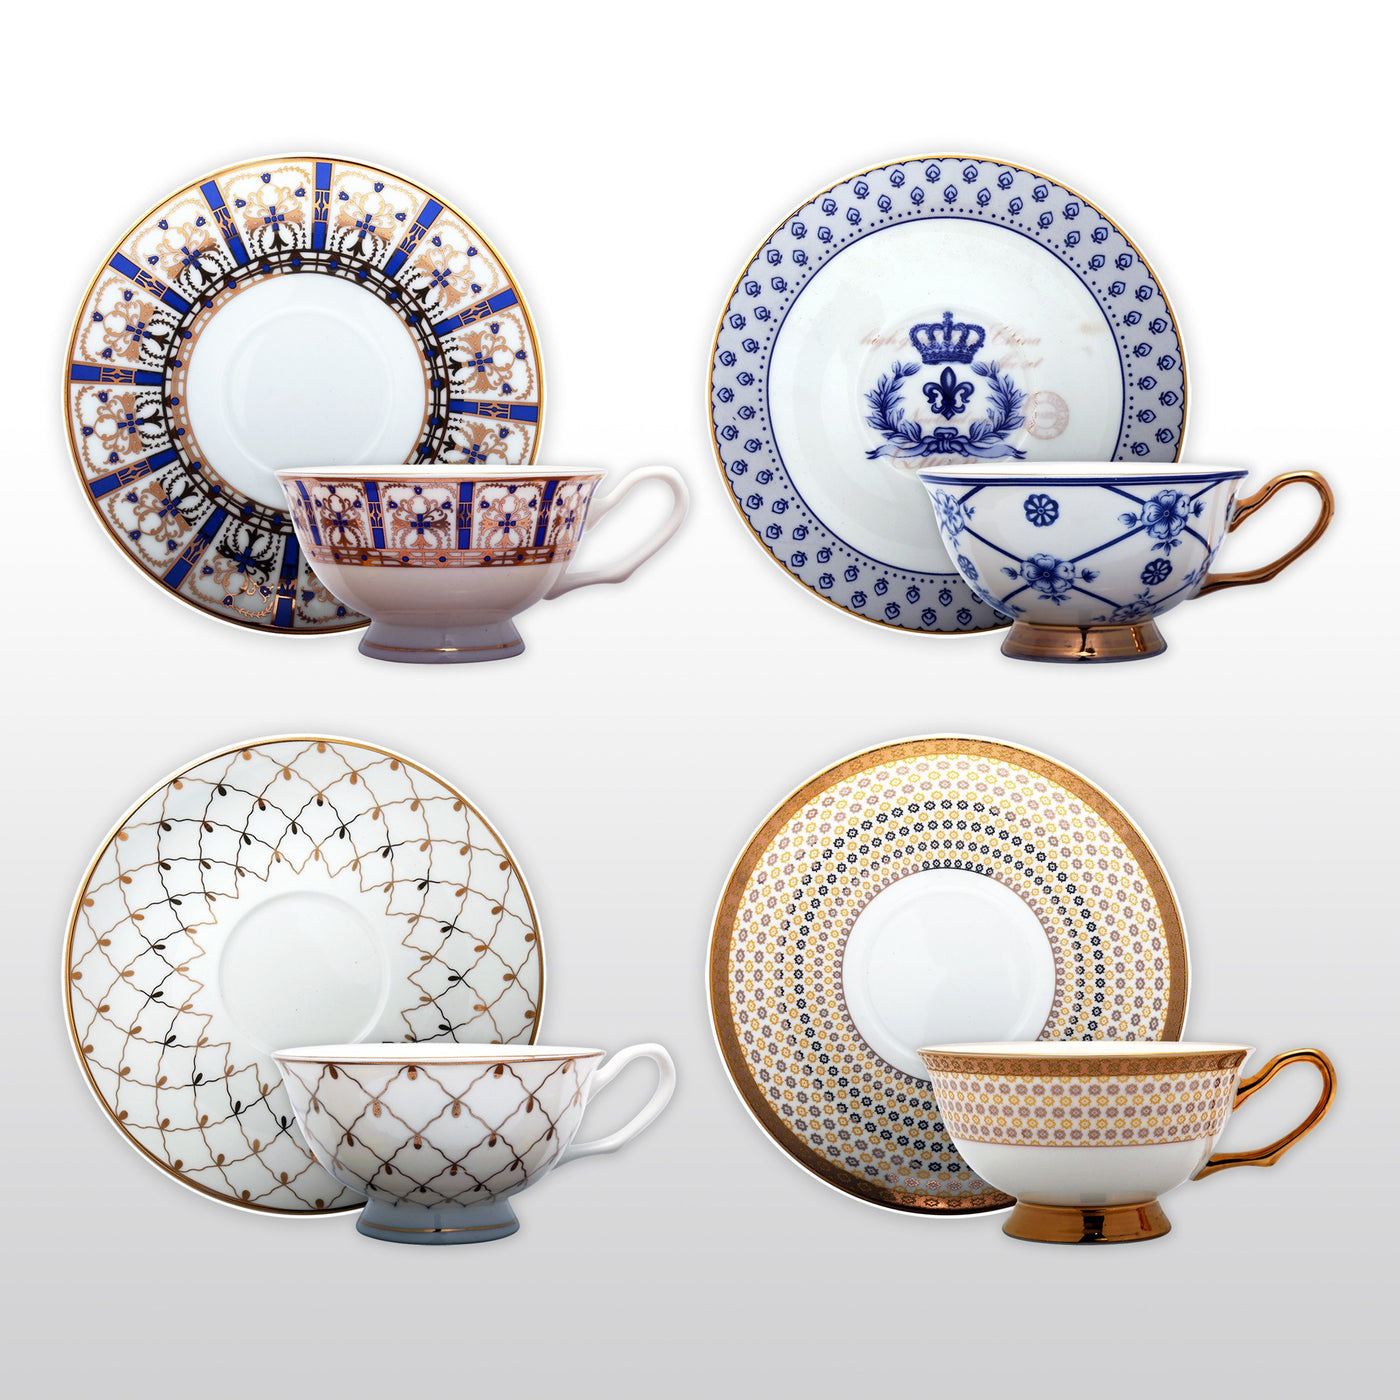 Japanese Assorted Blue and White Teacup Gift Set with Four Assorted Designs